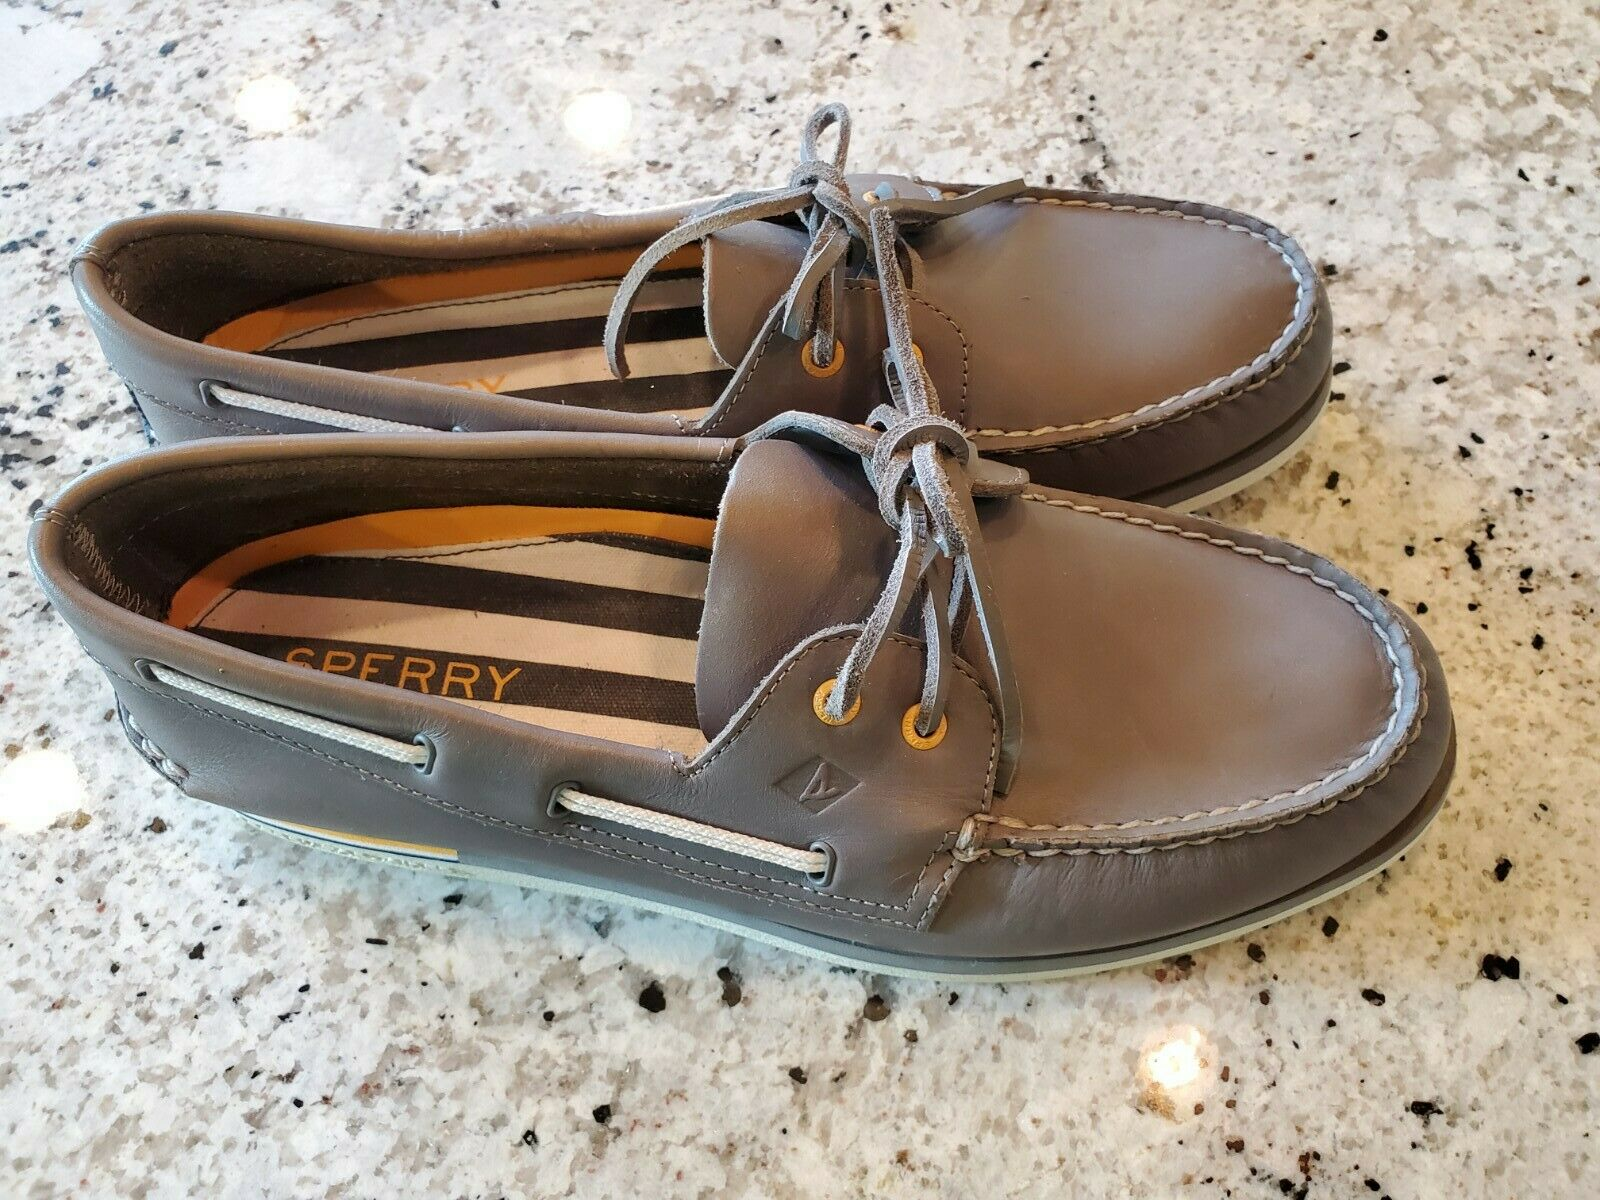 New SPERRY TOP-SIDER MEN'S GREY LEATHER LOAFER SHOES 13 M MSRP